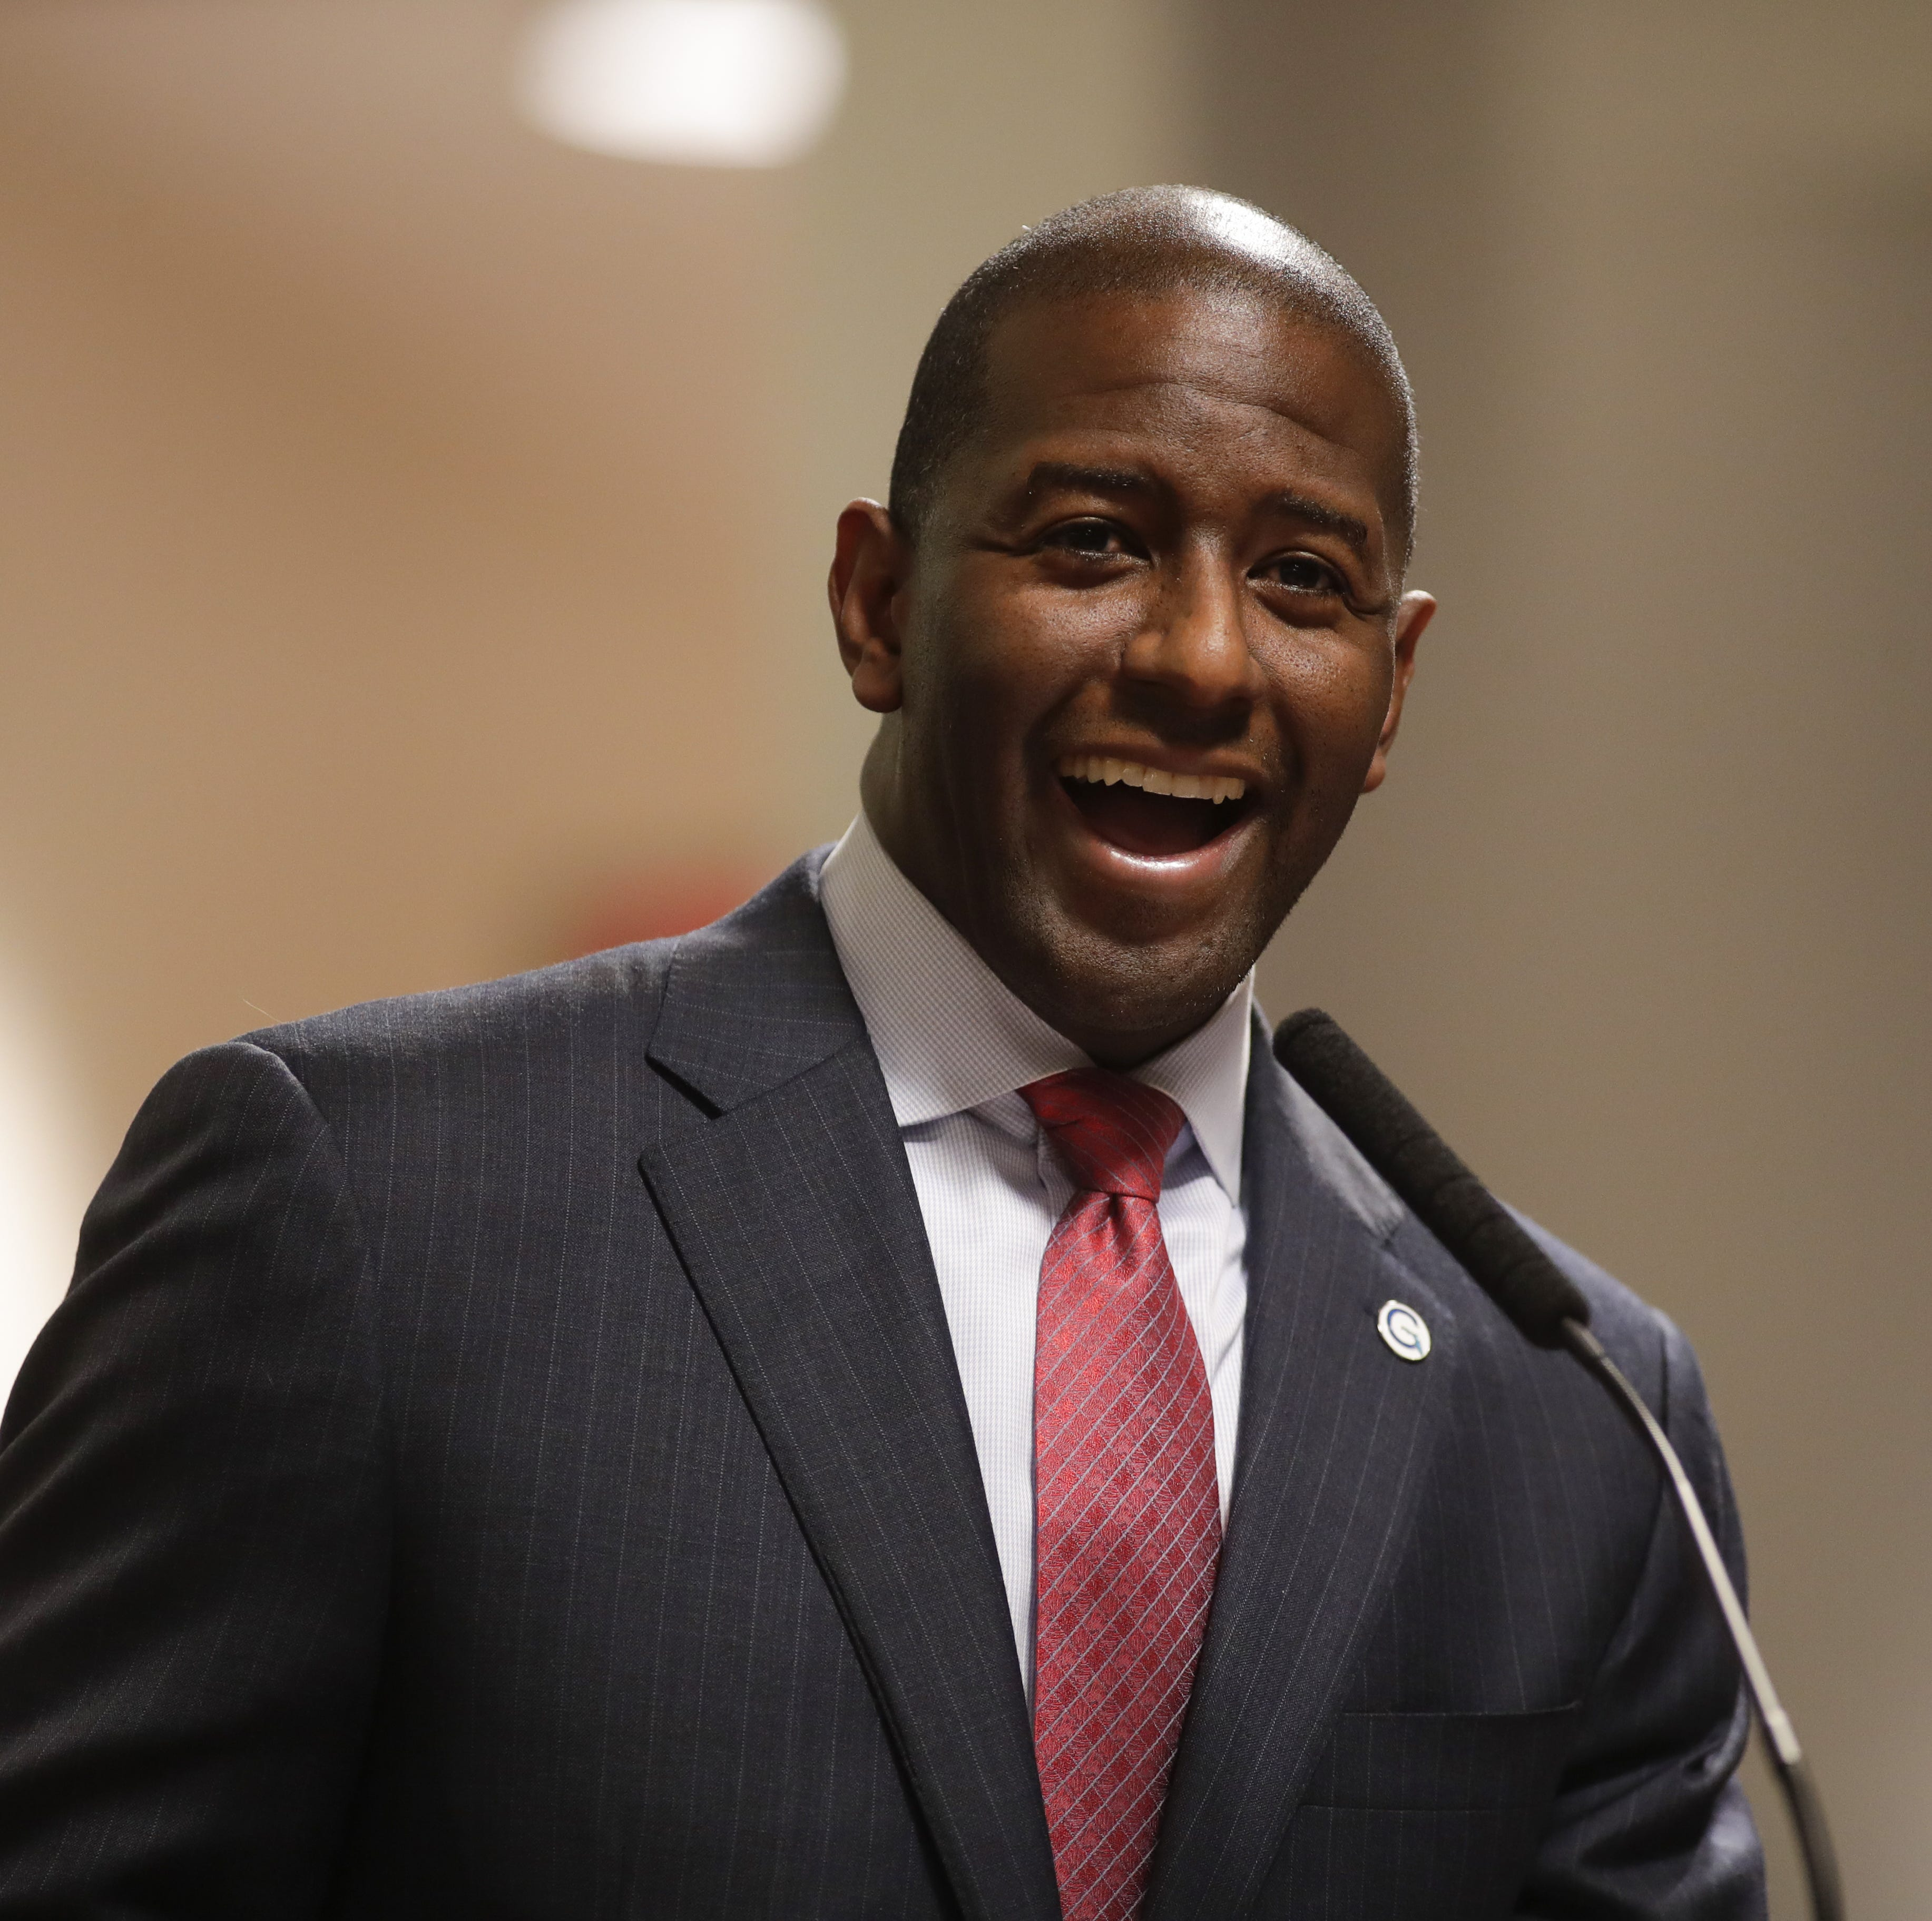 Could an Andrew Gillum endorsement be gold ticket in Florida Democratic presidential primary?